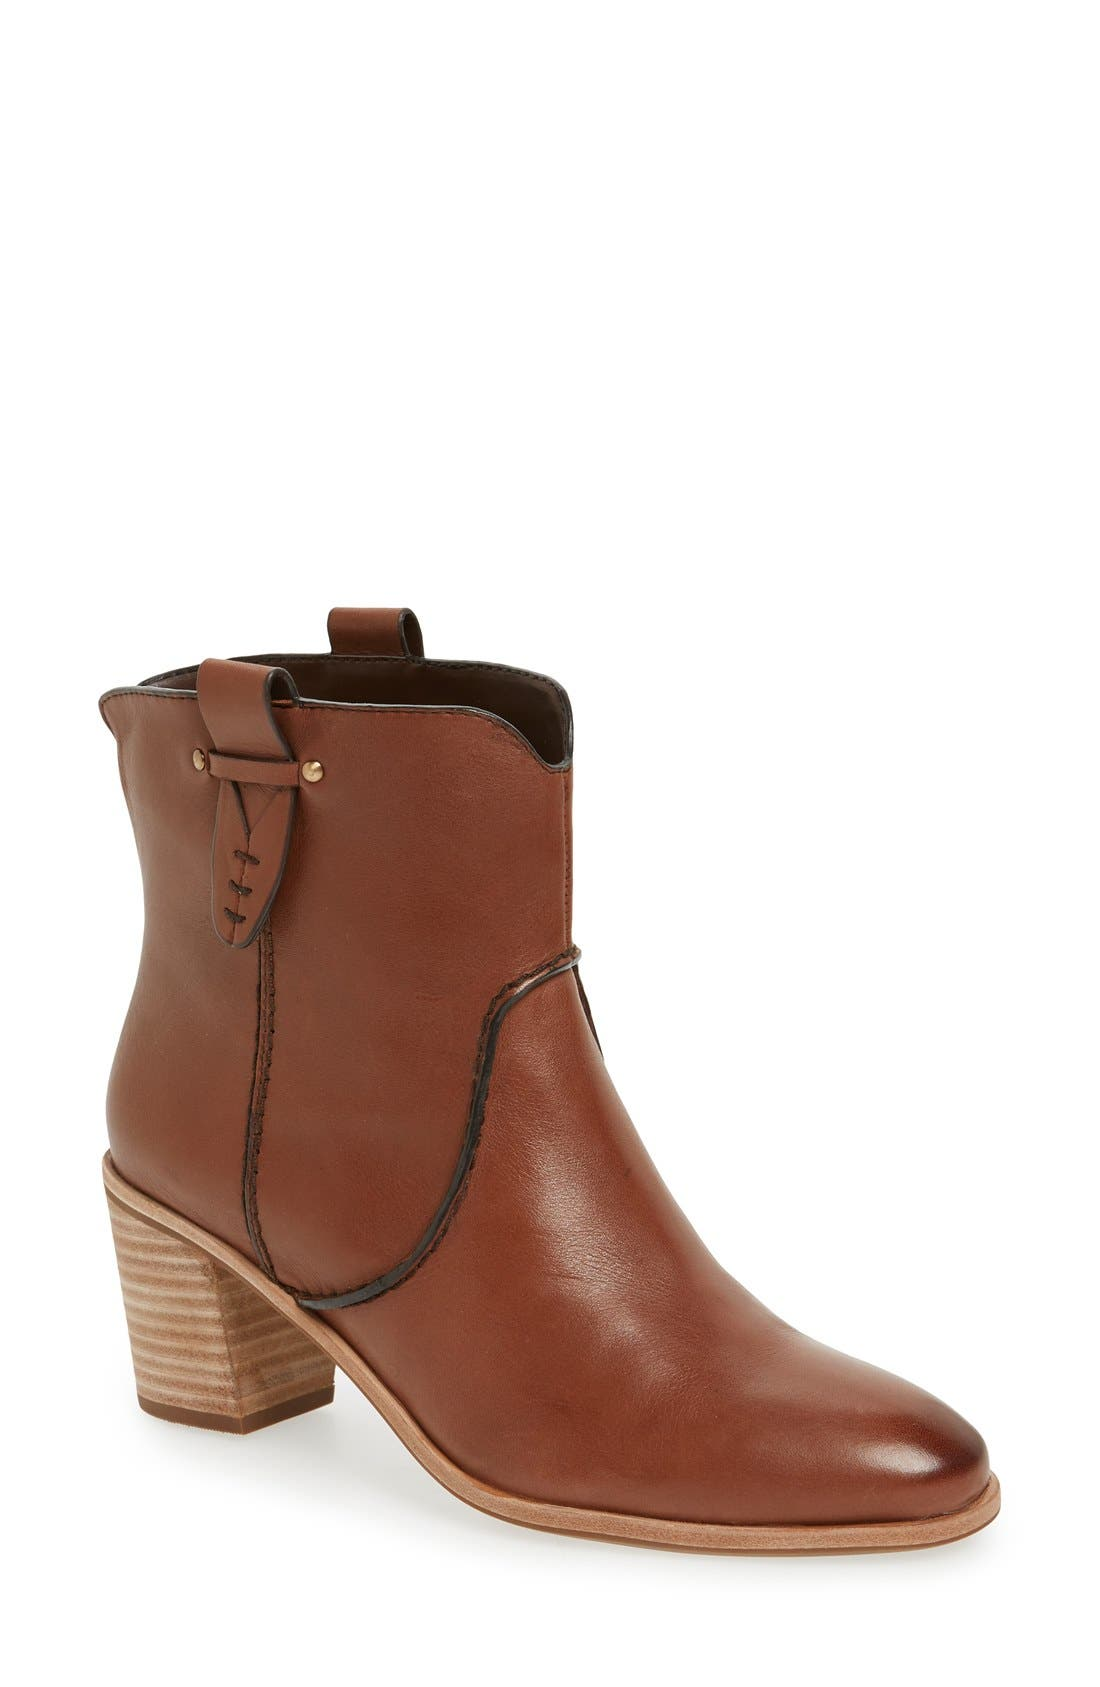 'Sophia' Pull-On Bootie,                         Main,                         color, Whiskey Leather